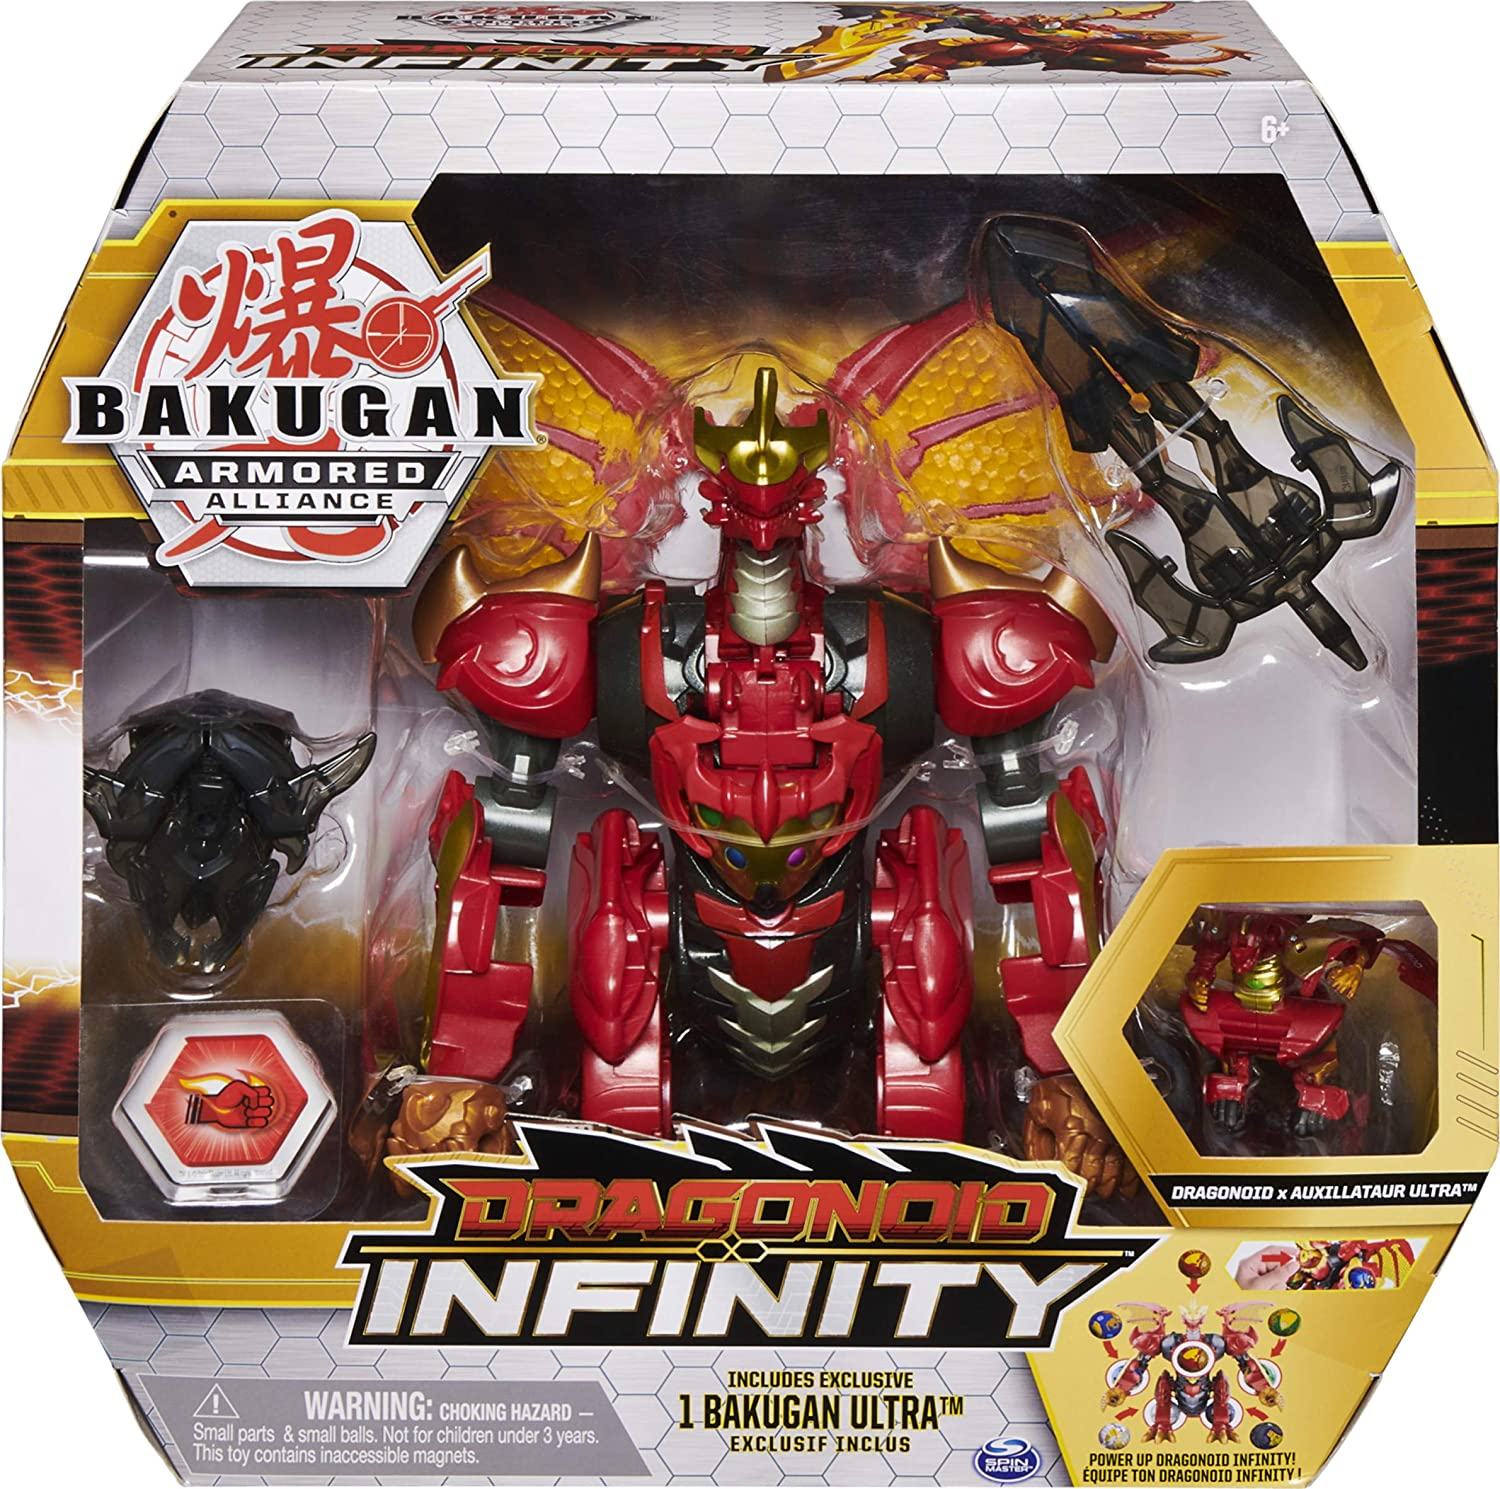 Bakugan Dragonoid Infinity Transforming Figure with Exclusive Fused Bakugan Ultra and 10 Baku-Gear Accessories